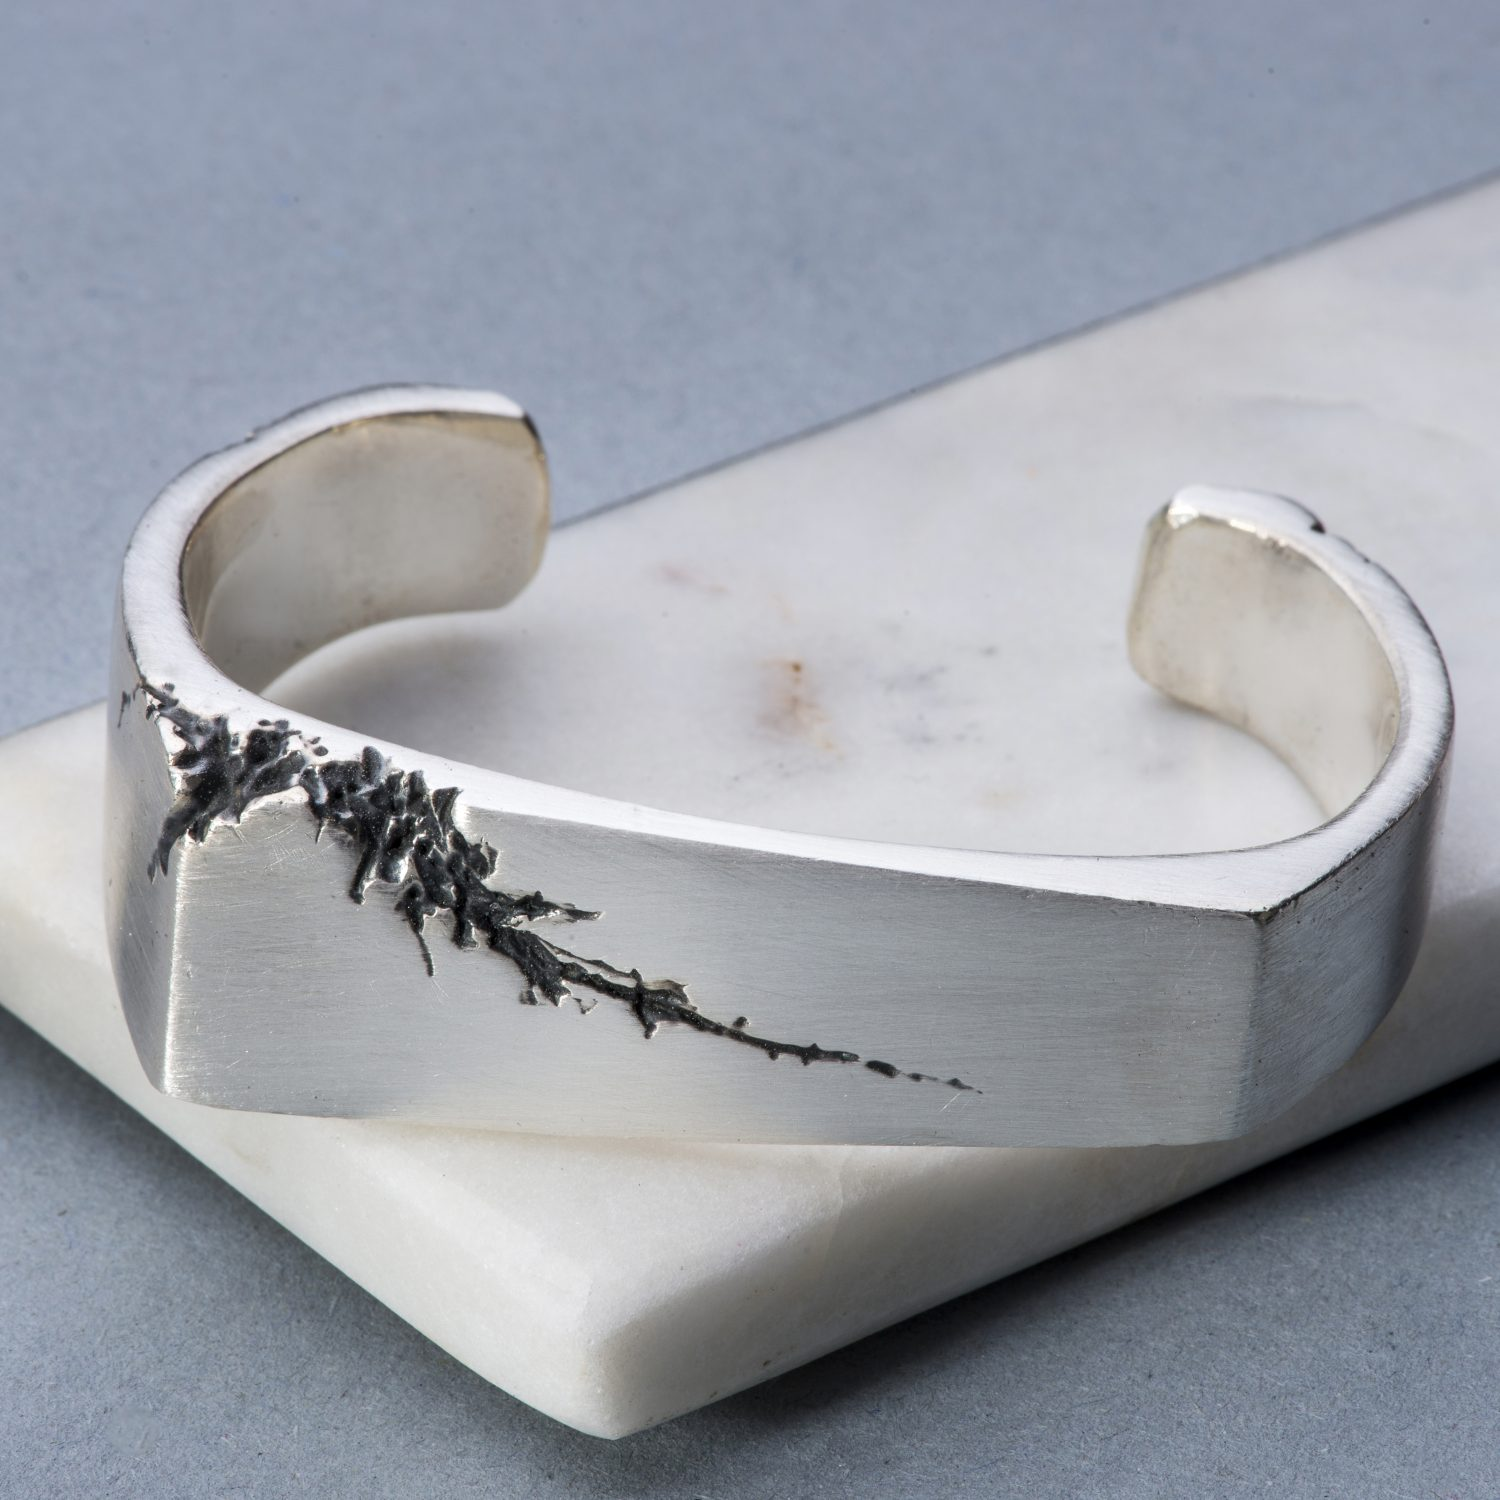 Angular solid silver mens cuff with crack detail